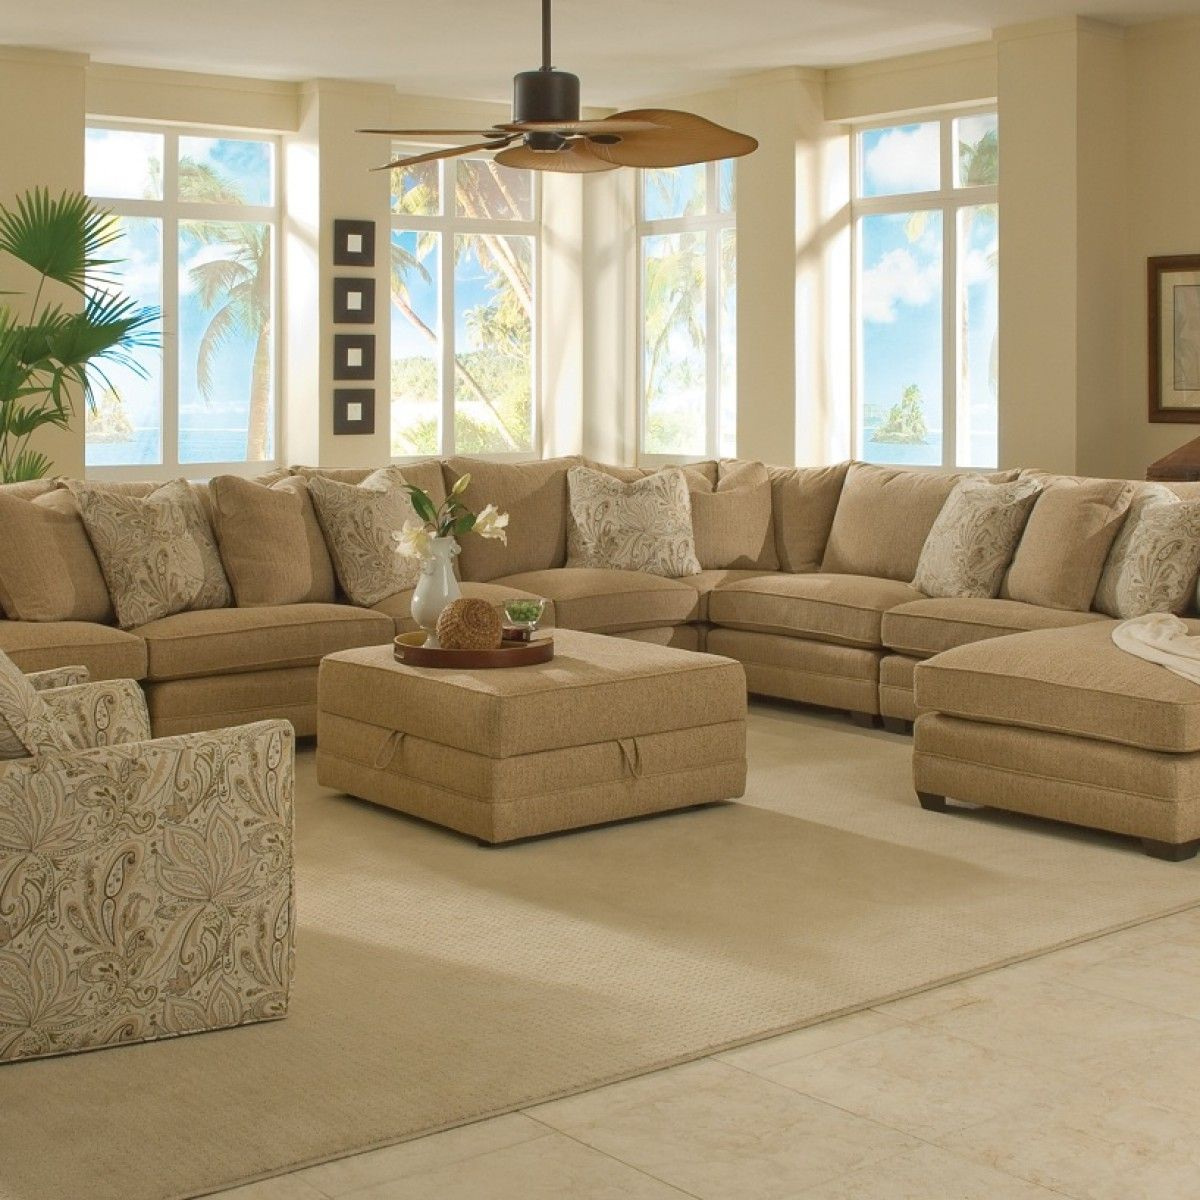 Magnificent large sectional sofas family room Sofas for small living room